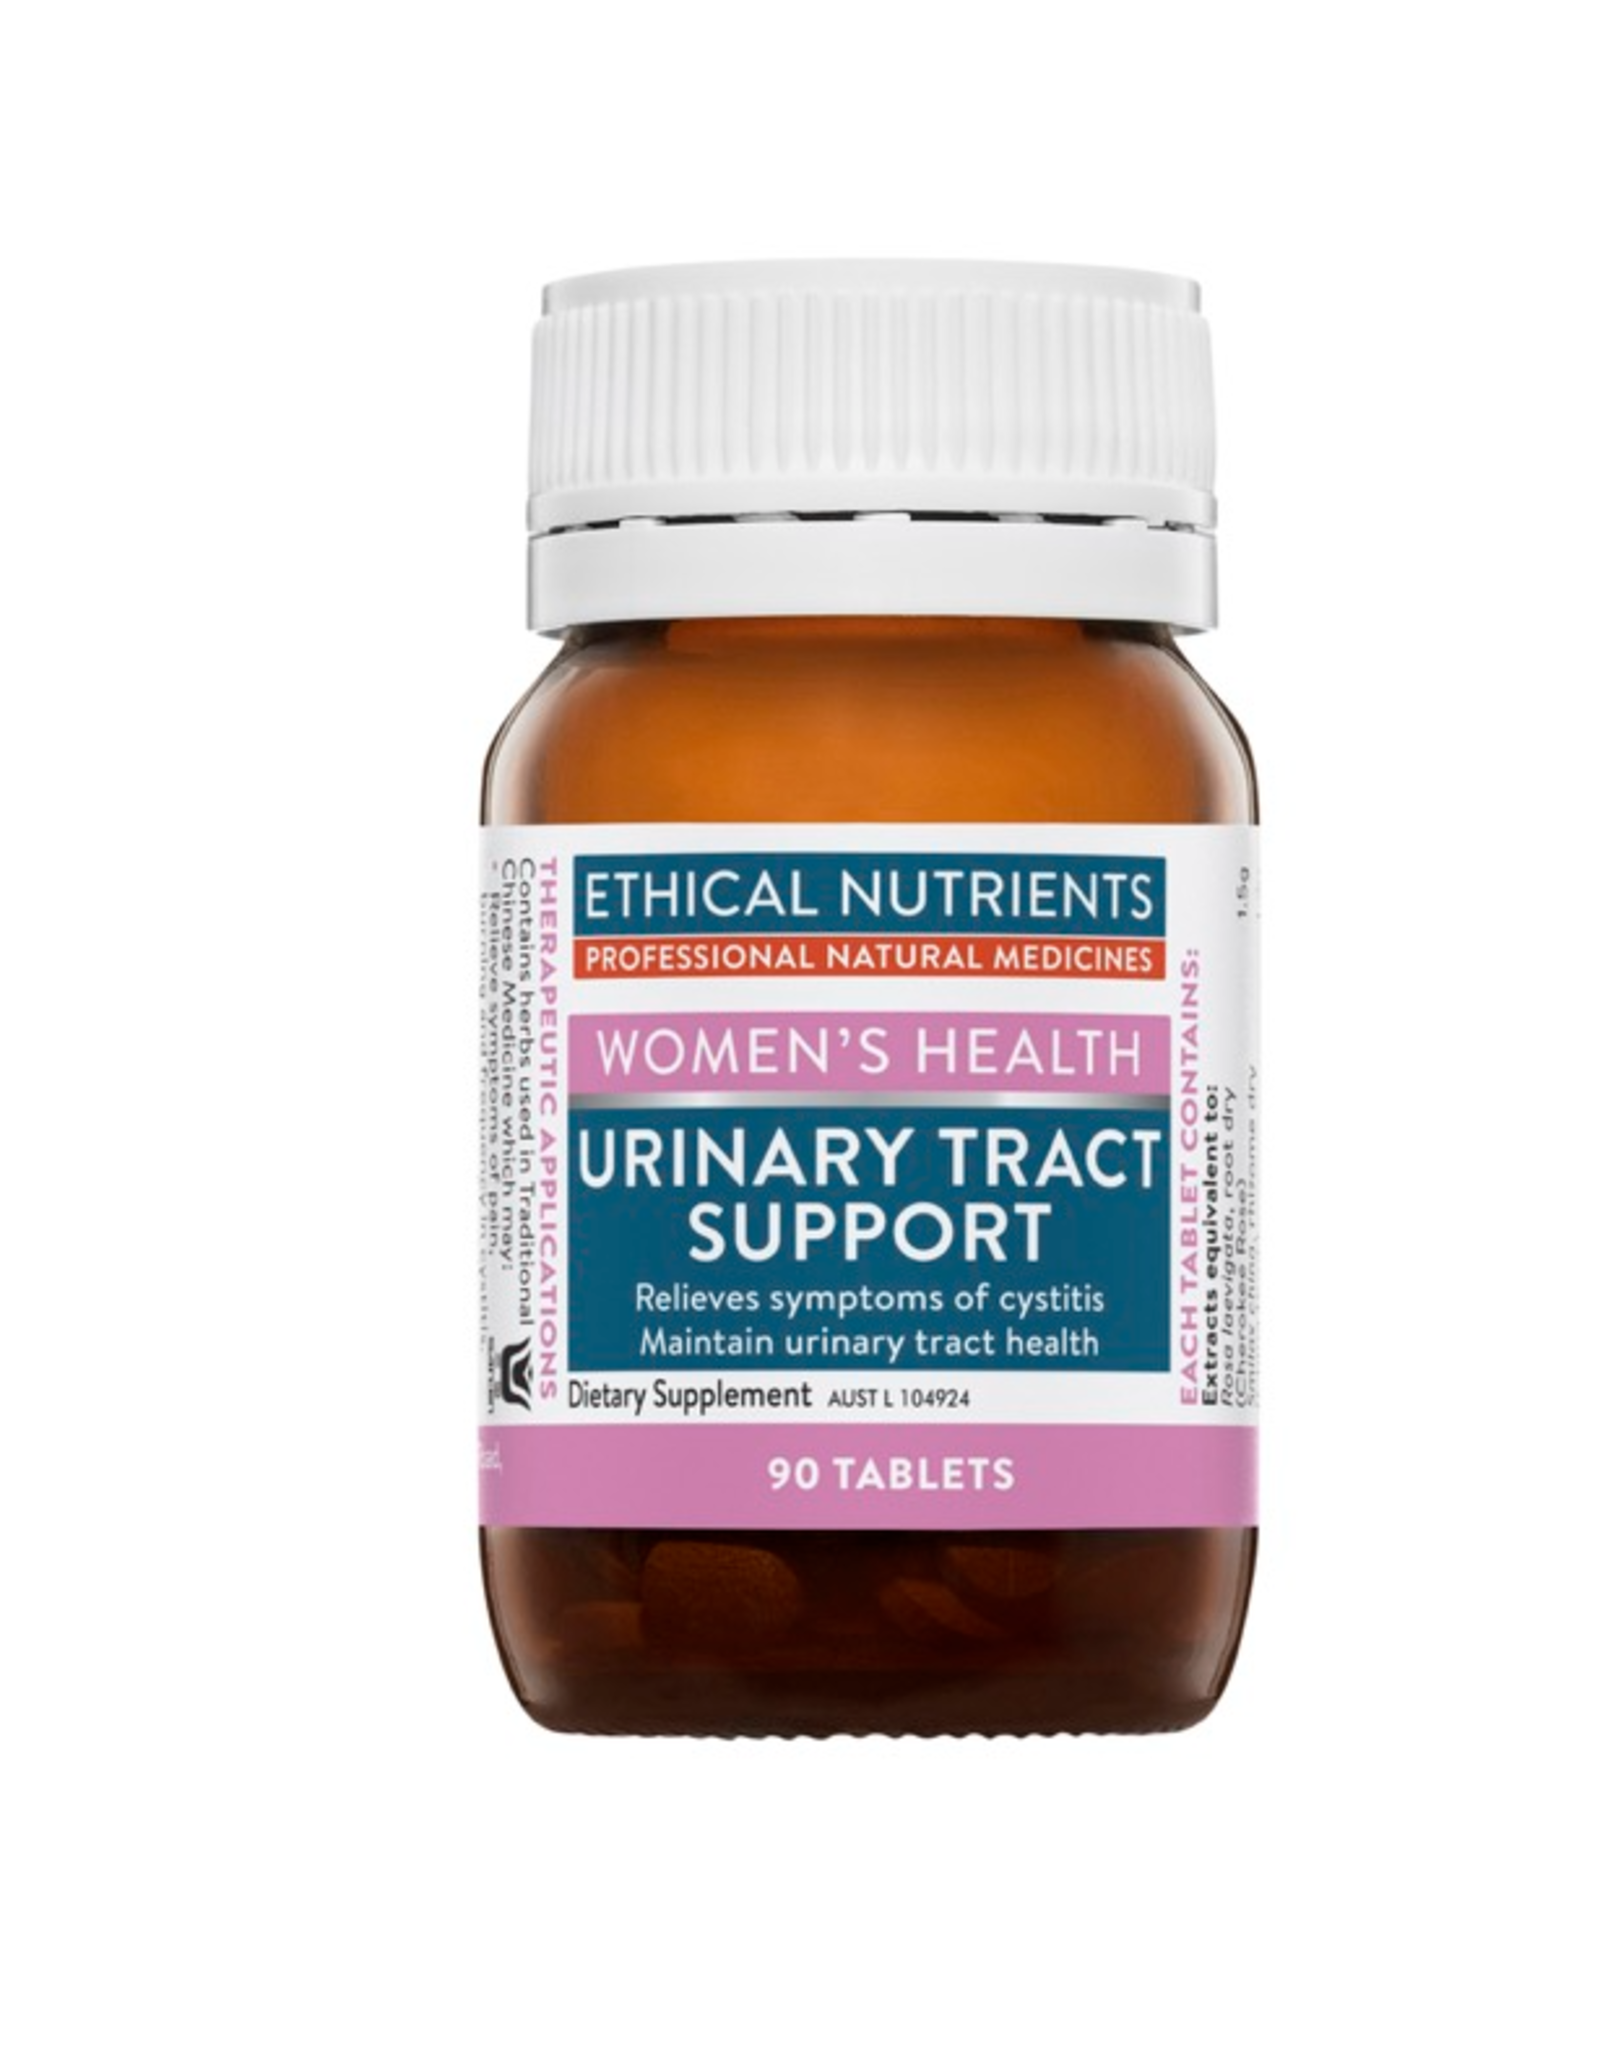 Ethical Nutrients Urinary Tract Support 90t